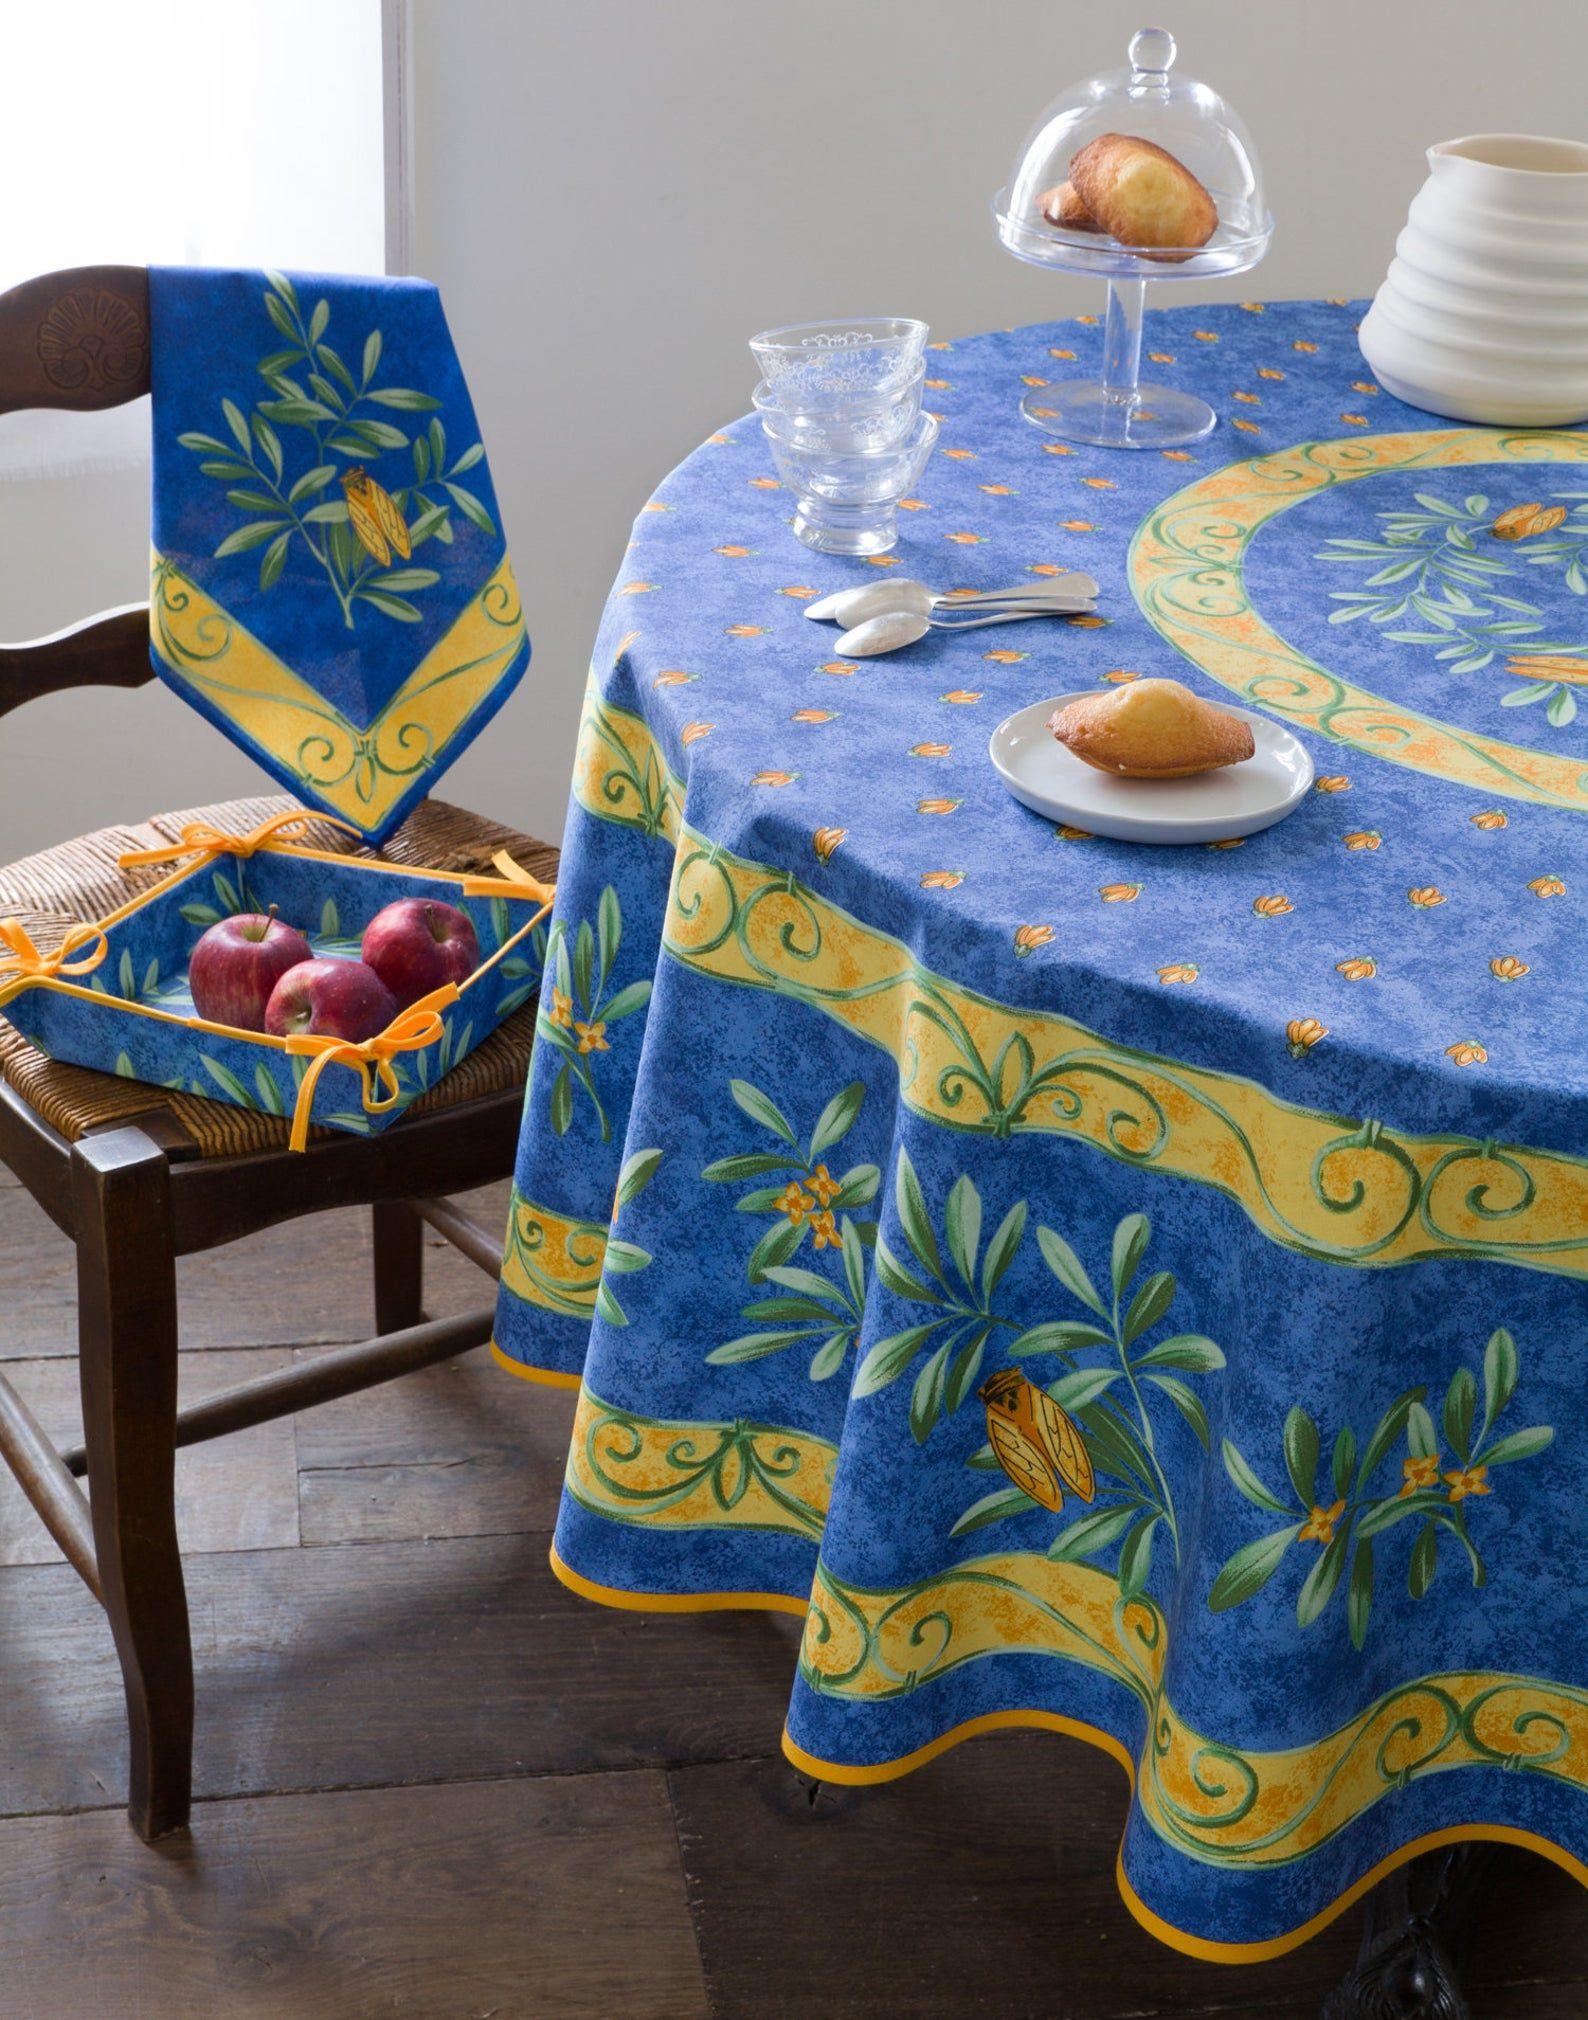 Cigale Blue Printed Cotton 70 Inches Round Table Cloths Etsy In 2020 Table Cloth Elegant Tablecloth Fabric Decor